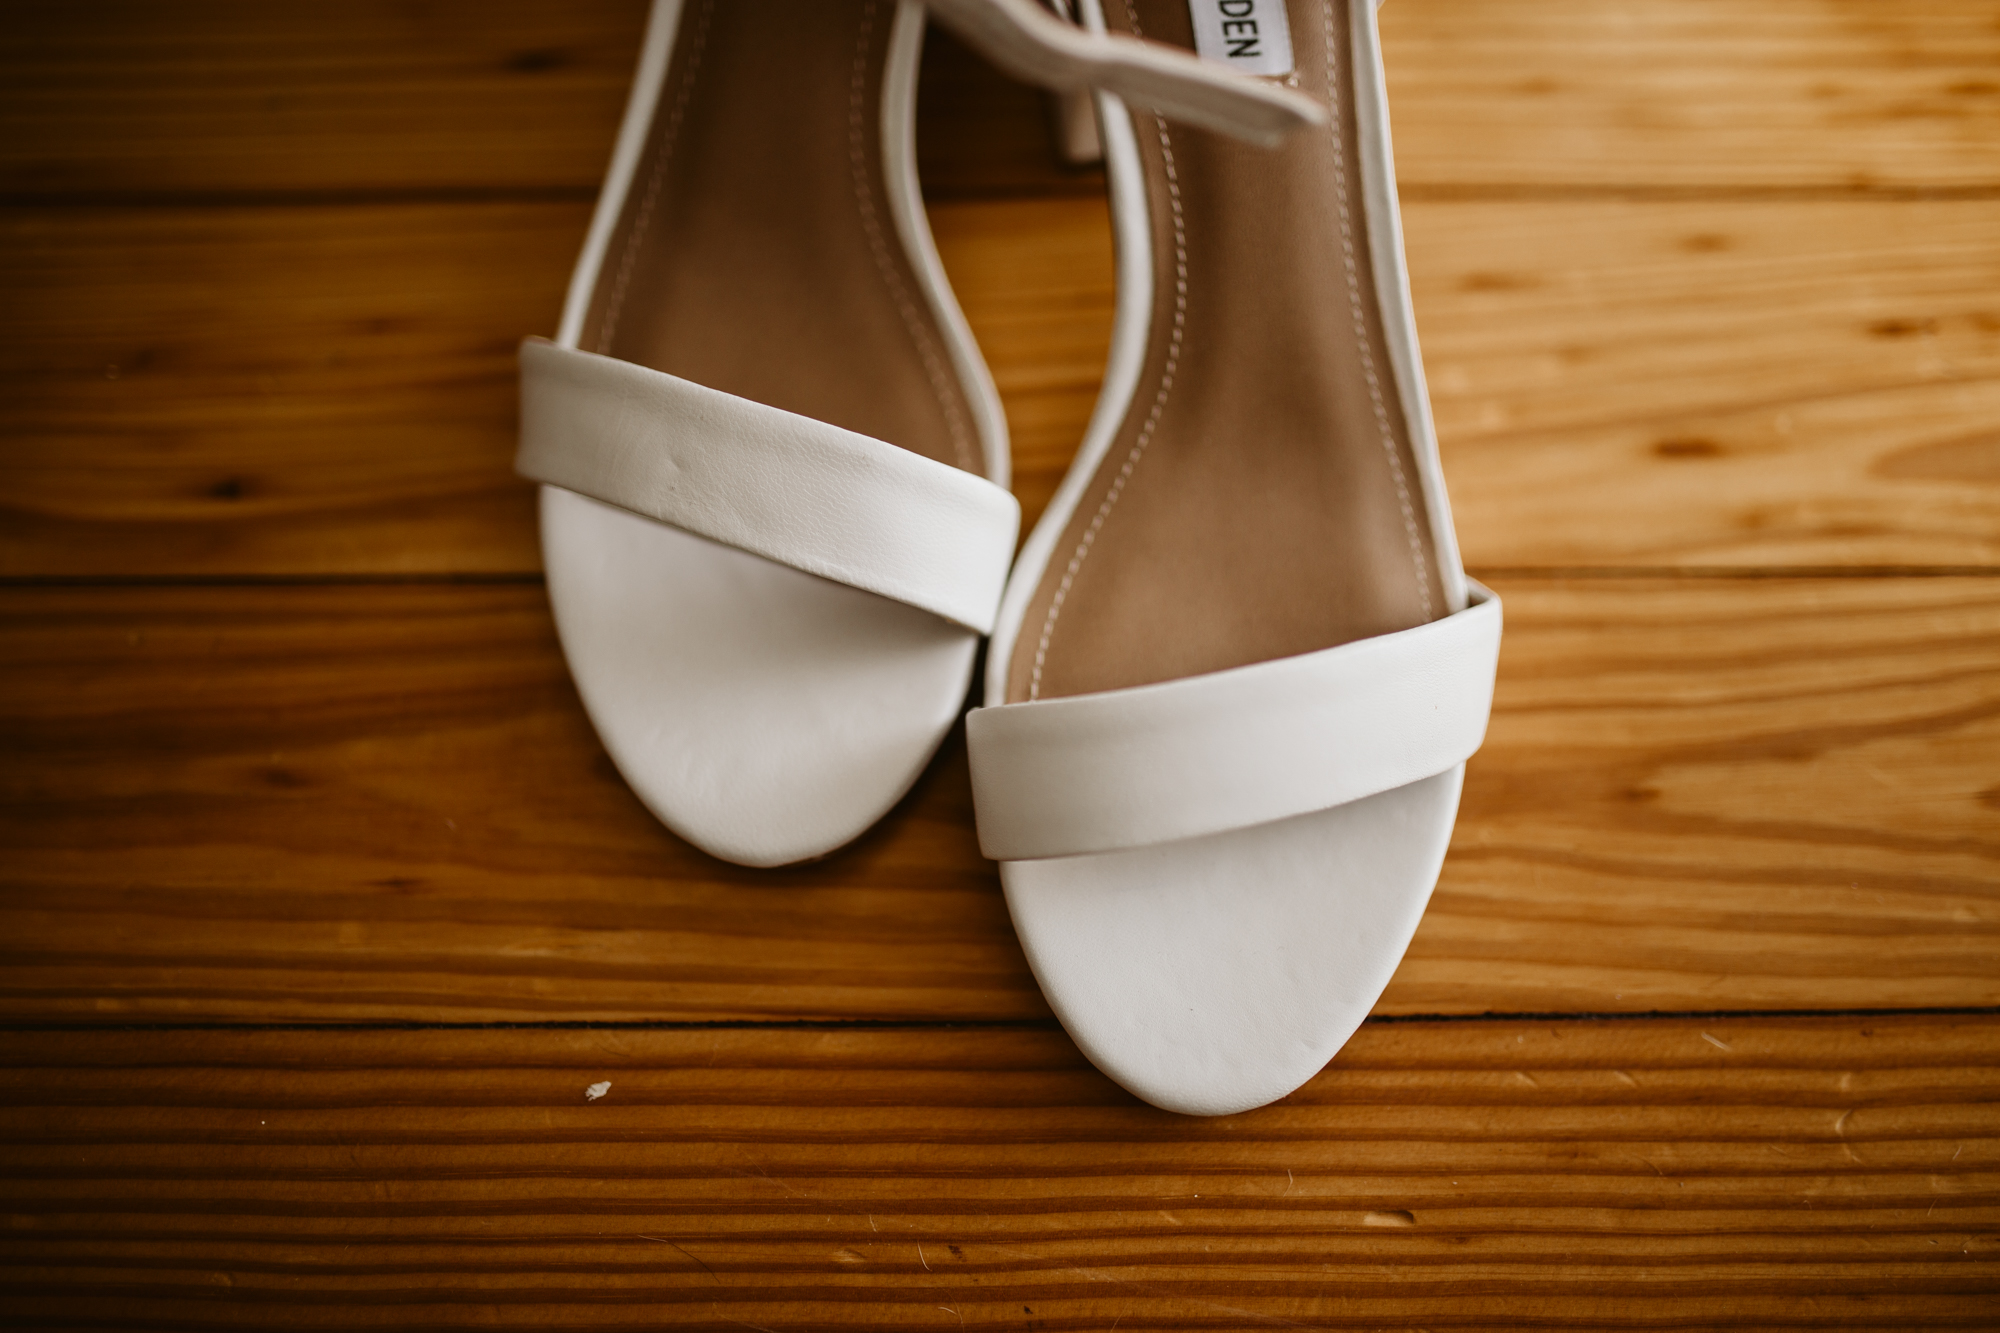 Bride's wedding shoes on the wooden floors of stone house of st charles